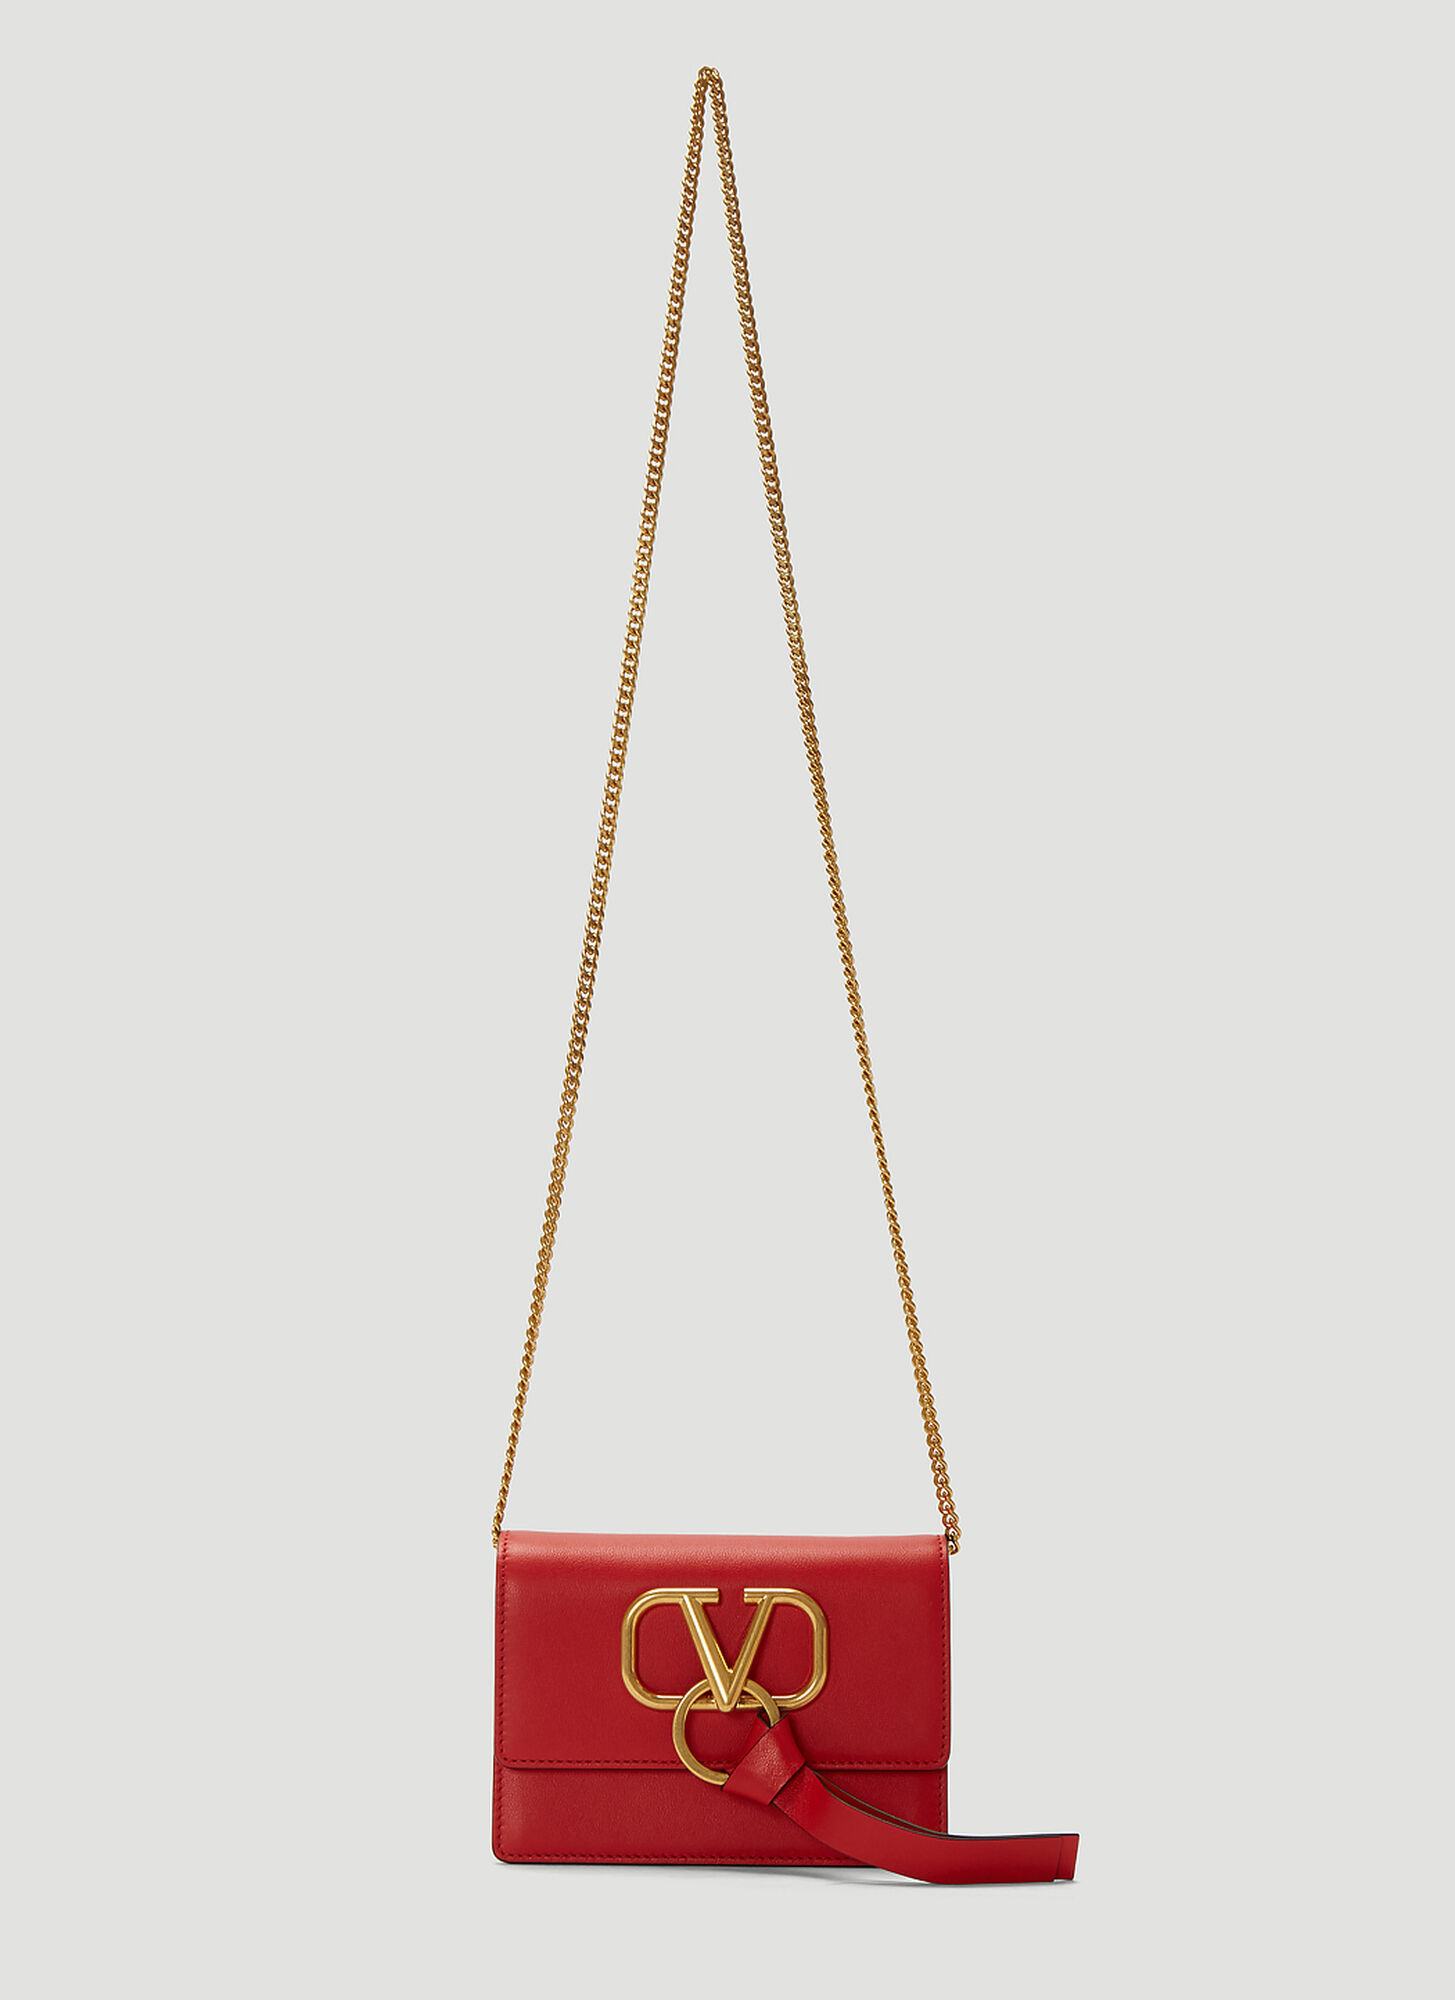 Valentino VRing Chain Bag in Red